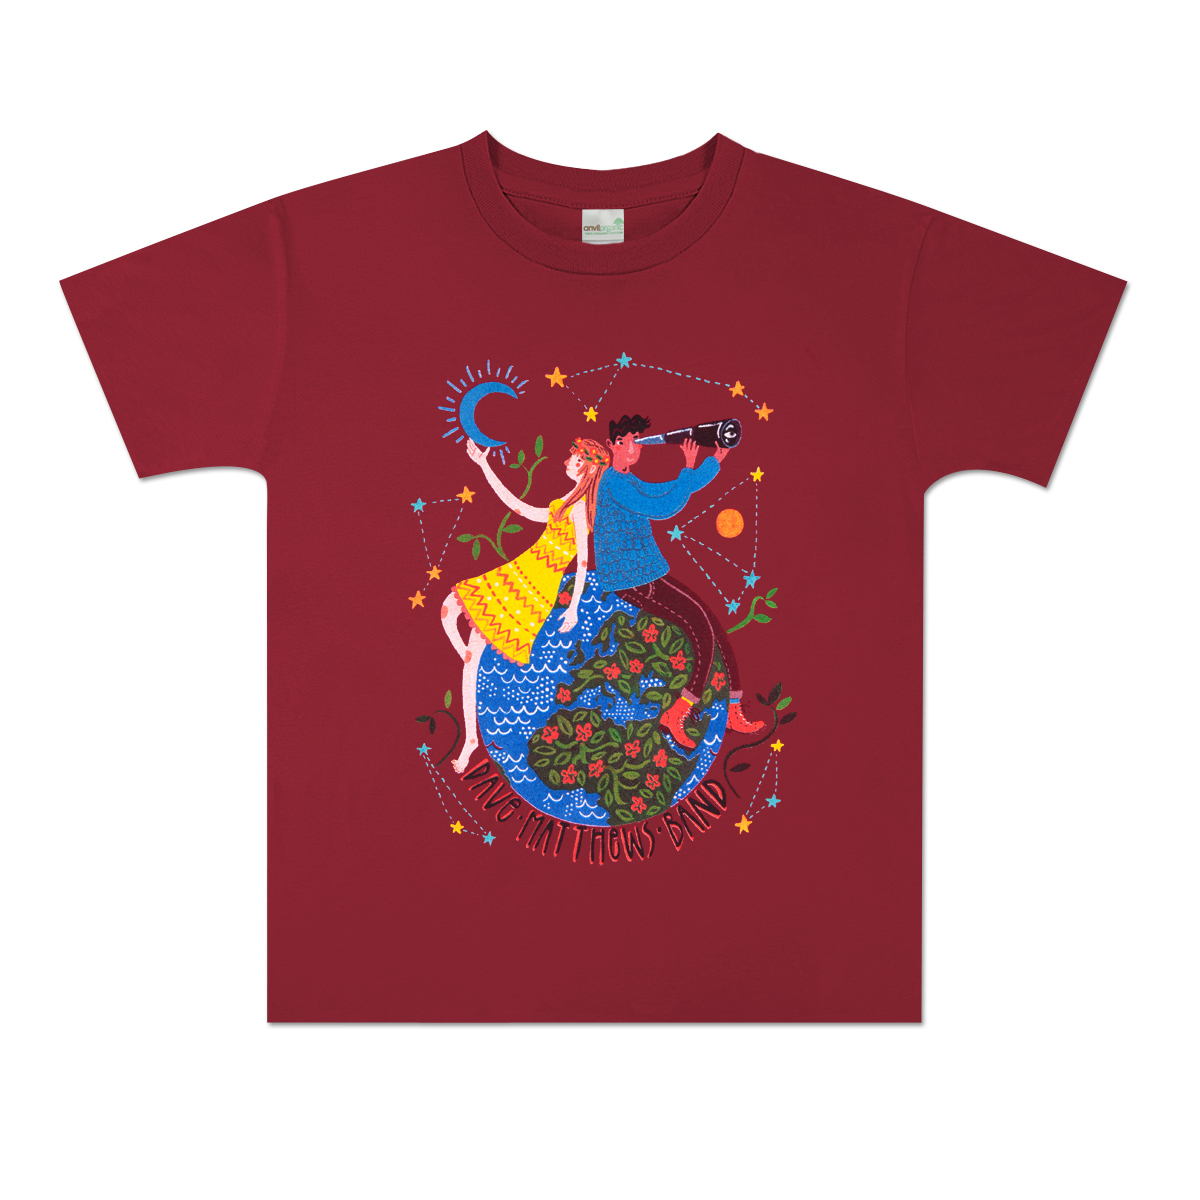 On Top of the World Kids' Shirt